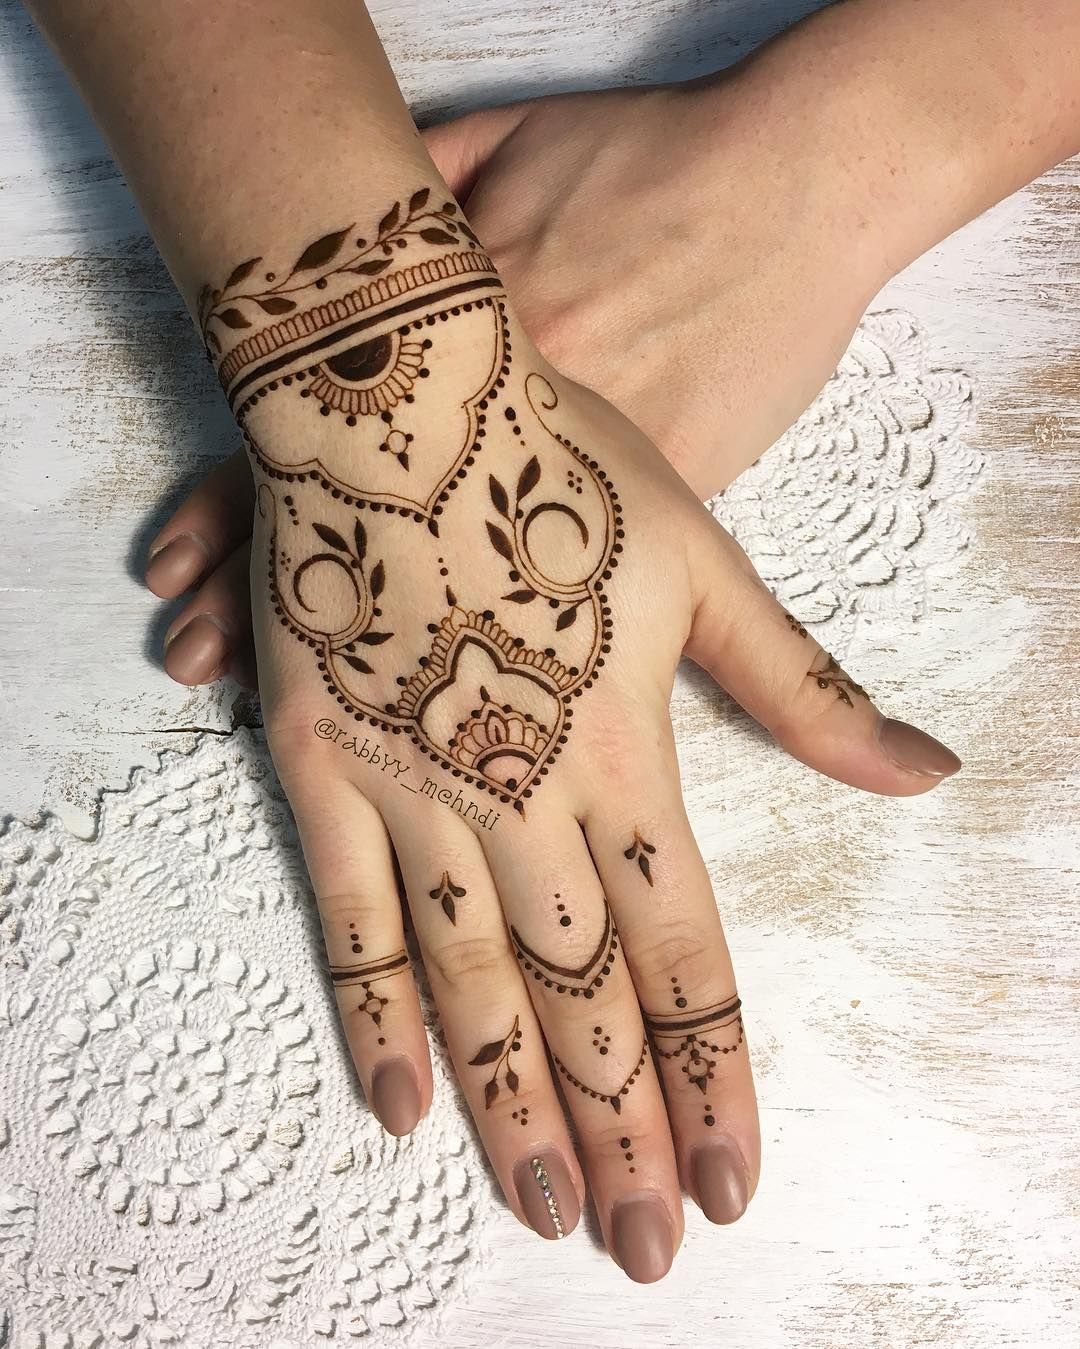 Henna tattoo on penis